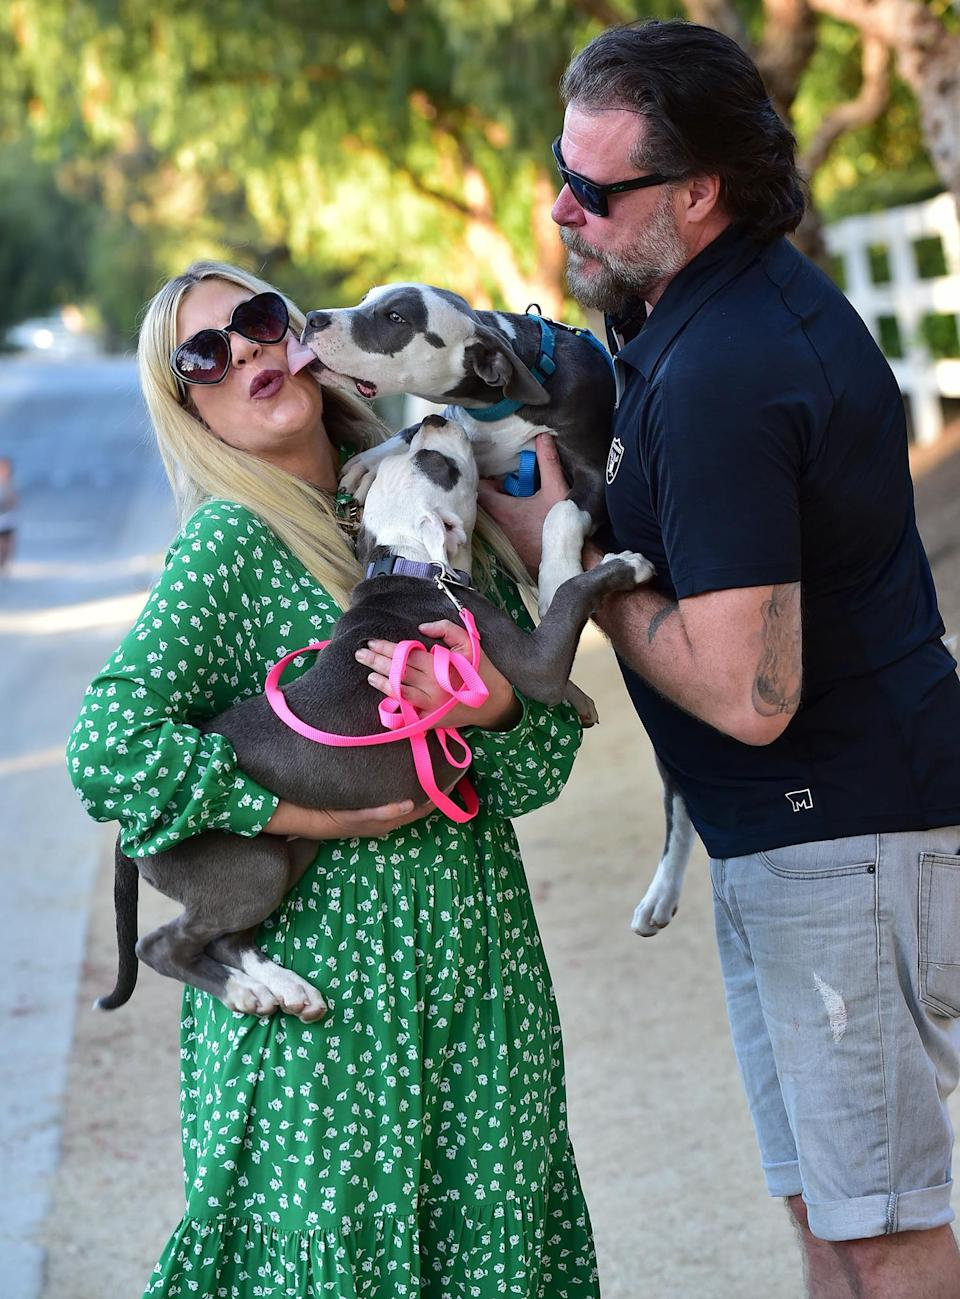 <p>Tori Spelling gets sweet kisses from her dogs while out for a walk with husband Dean McDermott on Monday in L.A.</p>